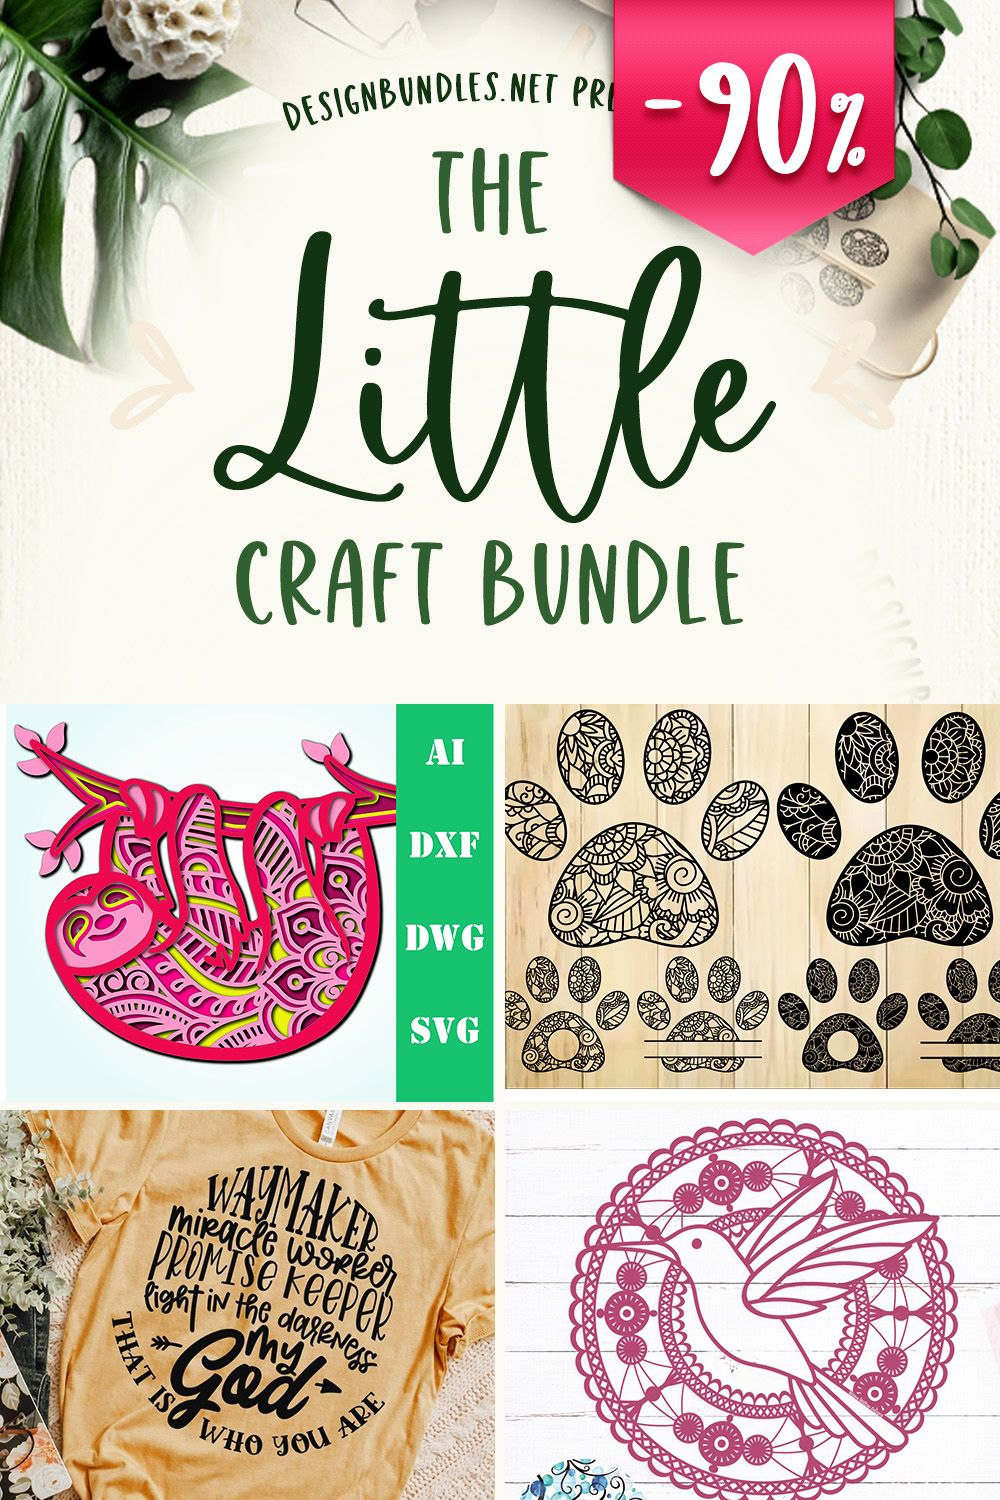 Download Cricut Silhouette Crafters The Little Craft Bundle Is Back For All Your Craft And Vinyl Projects In 2020 Vinyl Projects Cricut Projects Vinyl Crafts